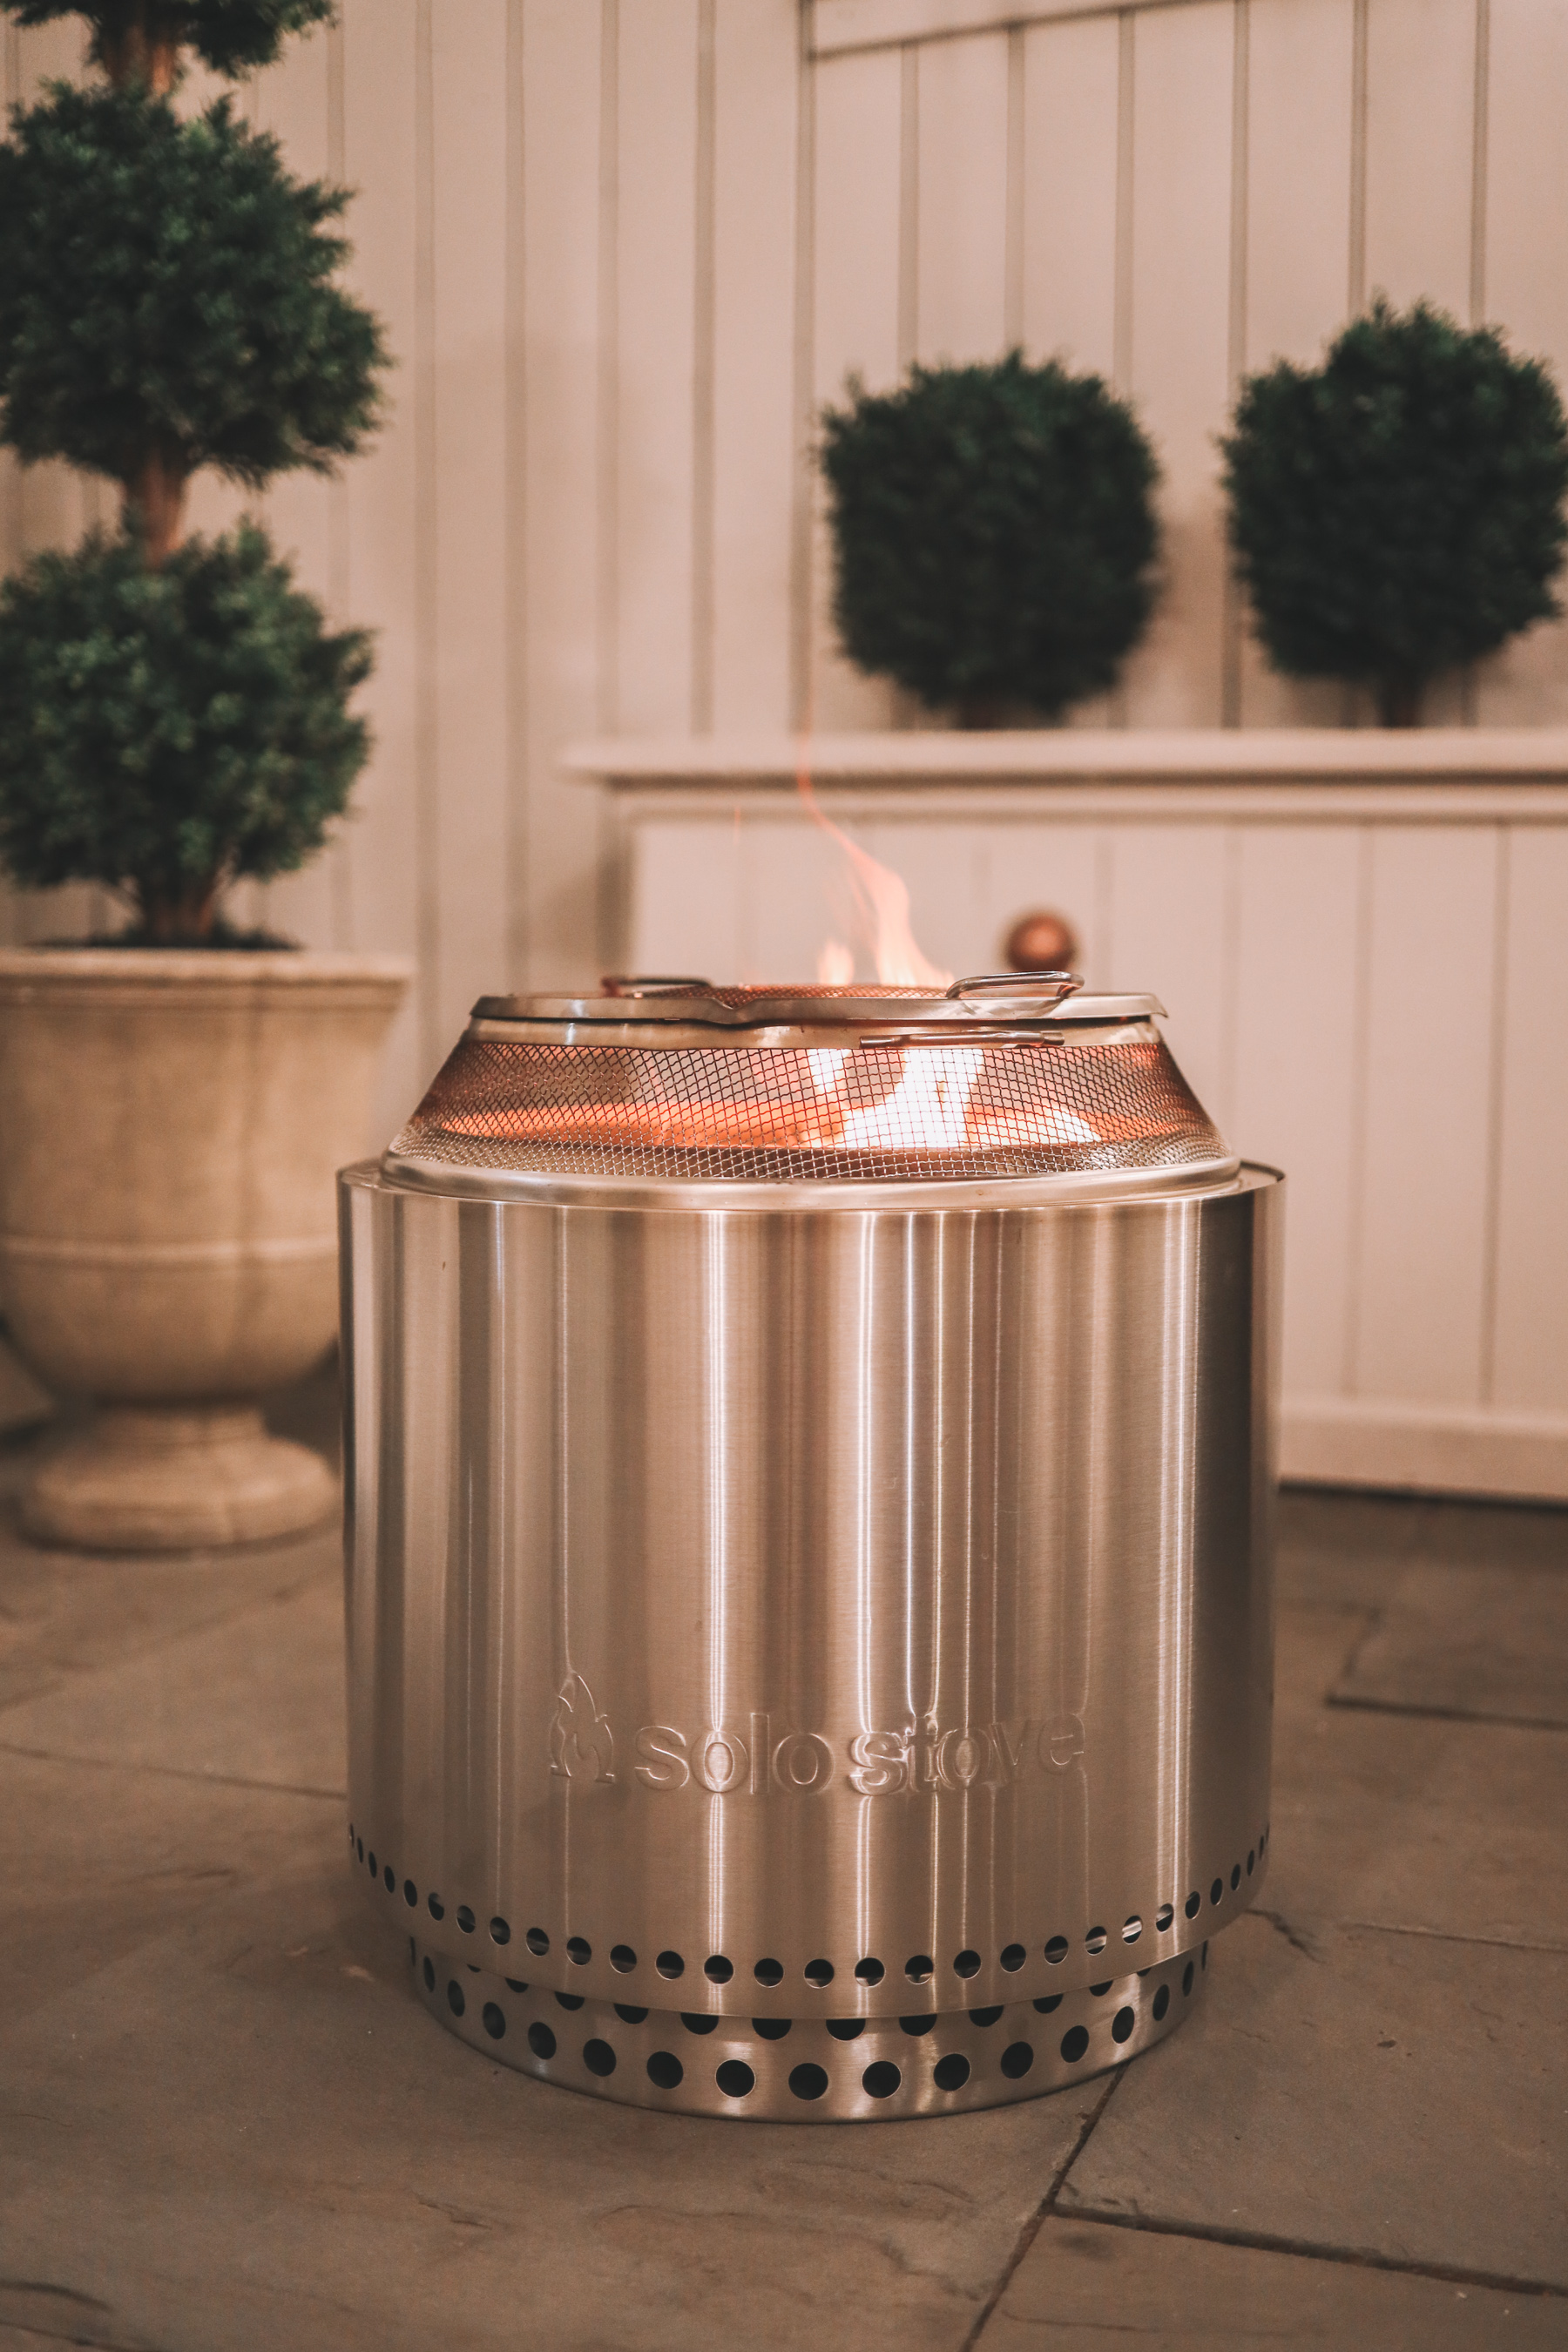 The Solo Stove Review